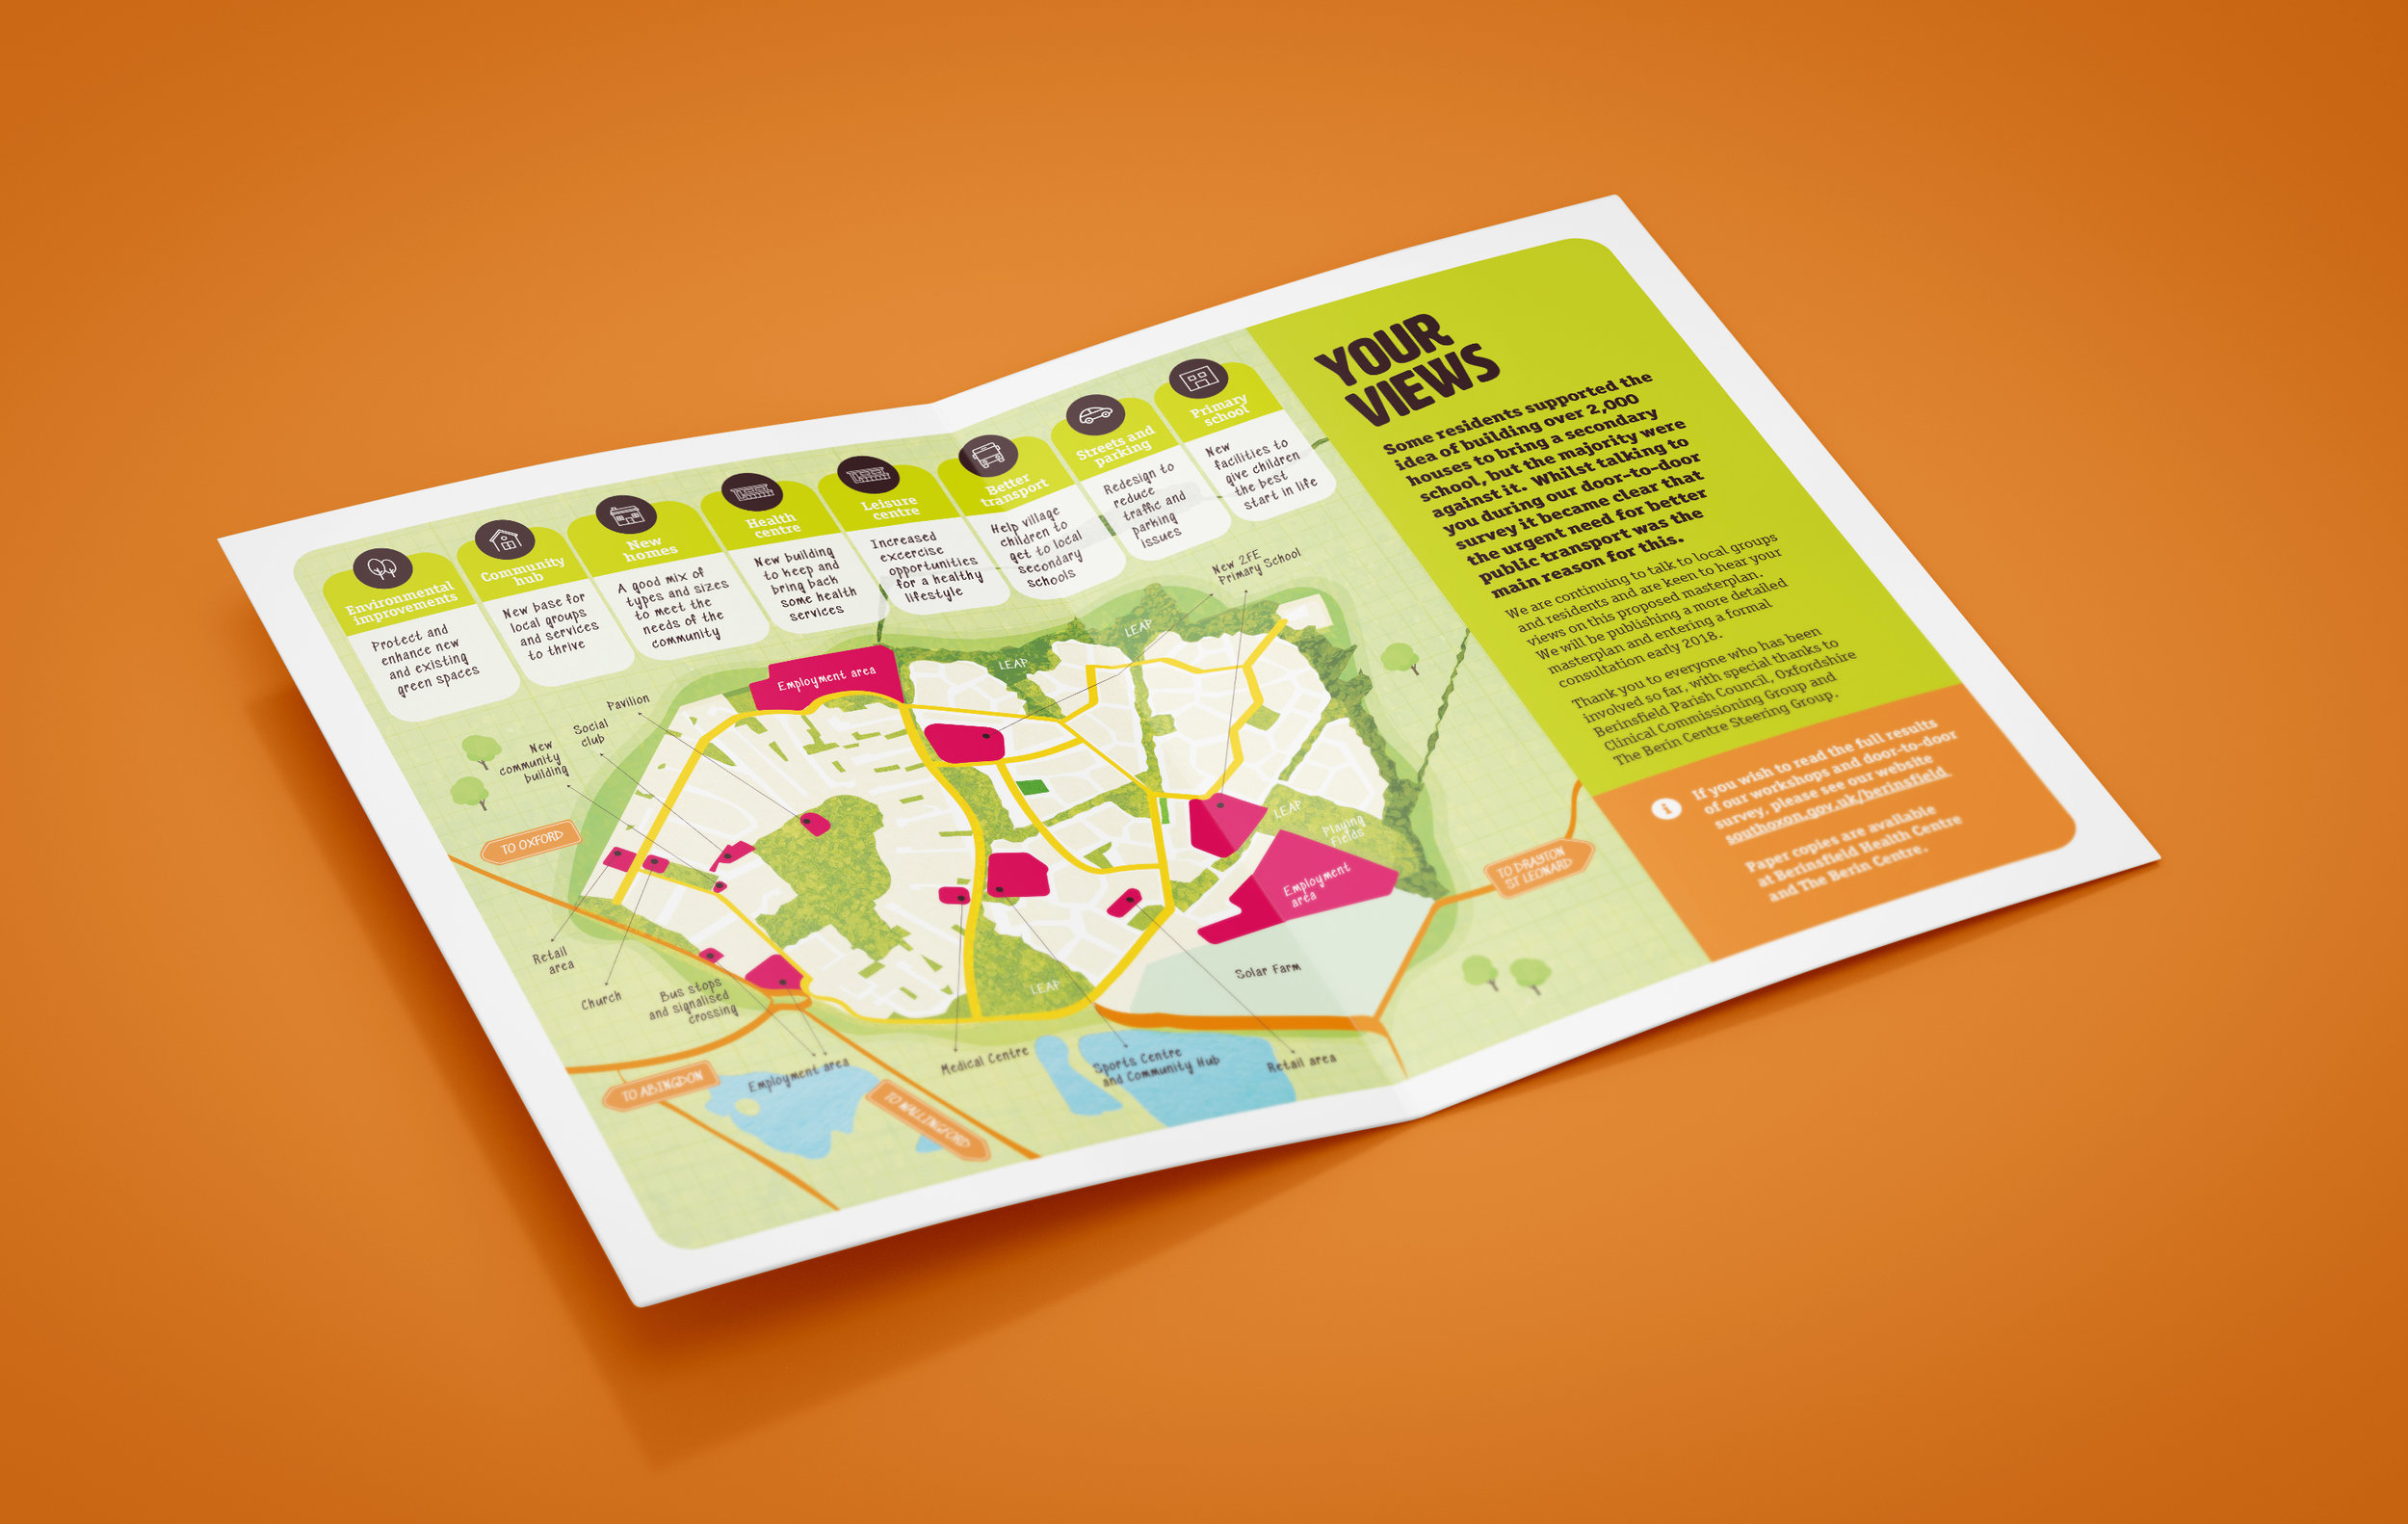 Laura Whitehouse Freelance Graphic Designer Edinburgh Marketing Materials Design Map Illustration Illustrator